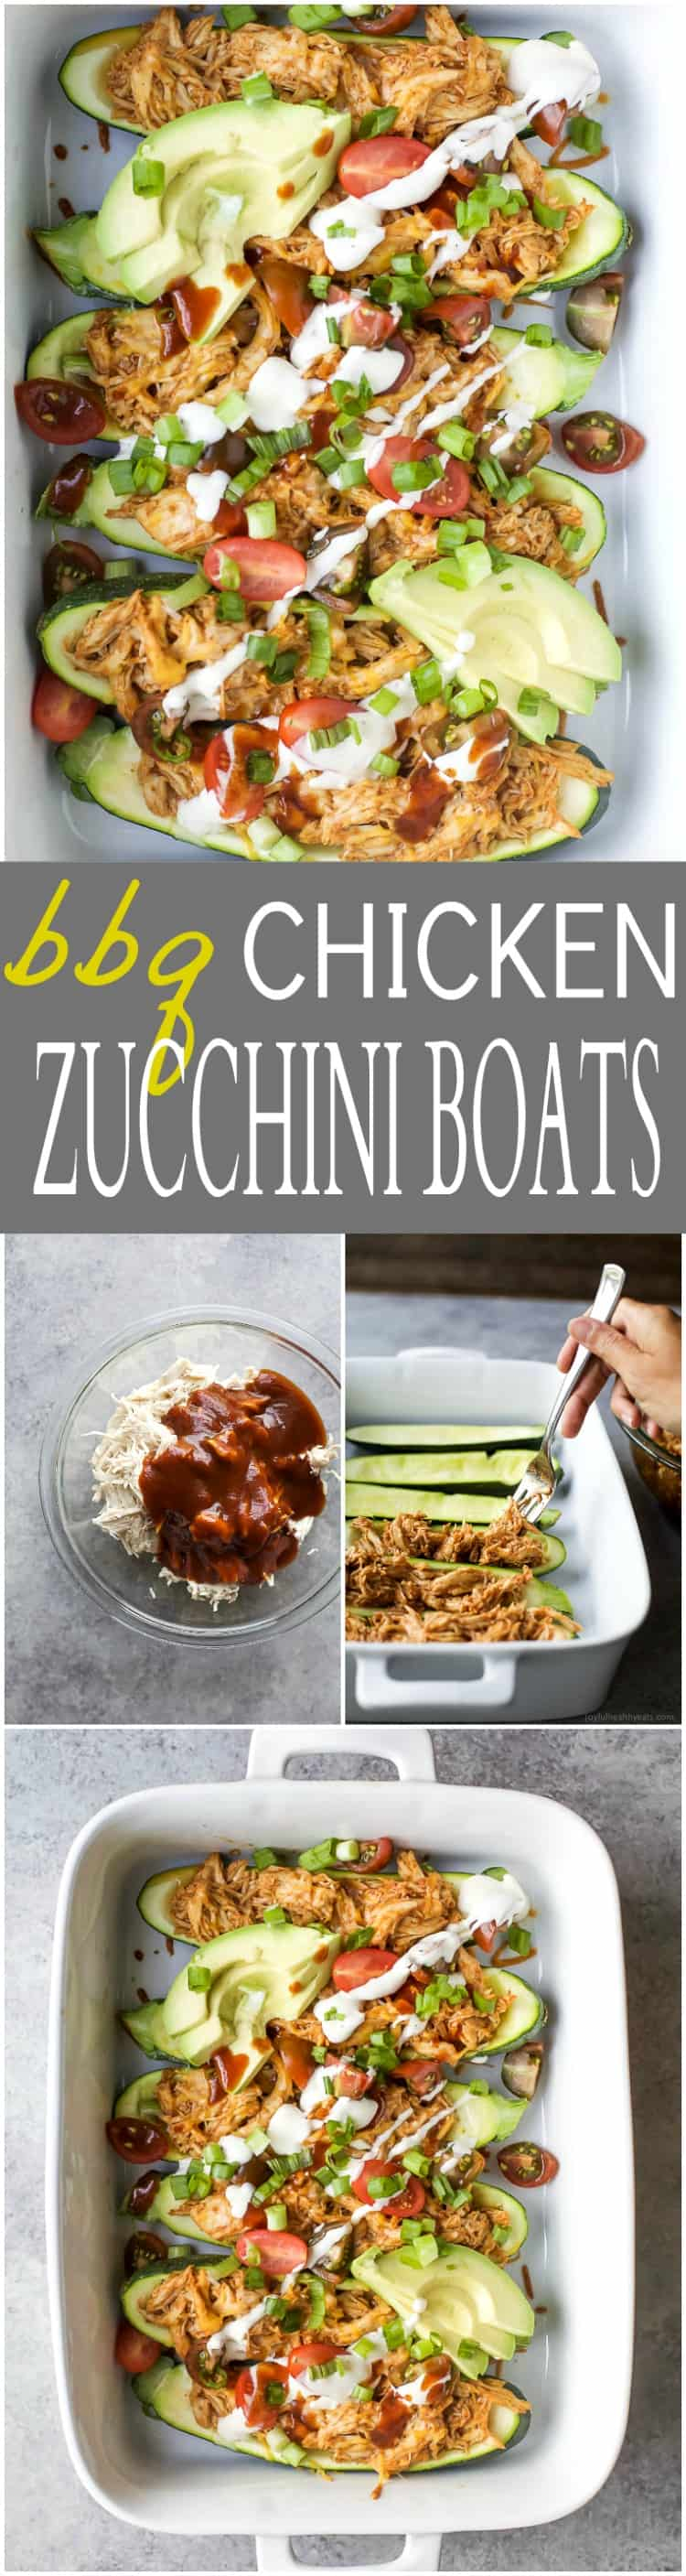 30 Minute BBQ Chicken Zucchini Boats - loaded with flavor, low in calories and high in protein. The perfect easy healthy recipe for a quick weeknight dinner your family will love!